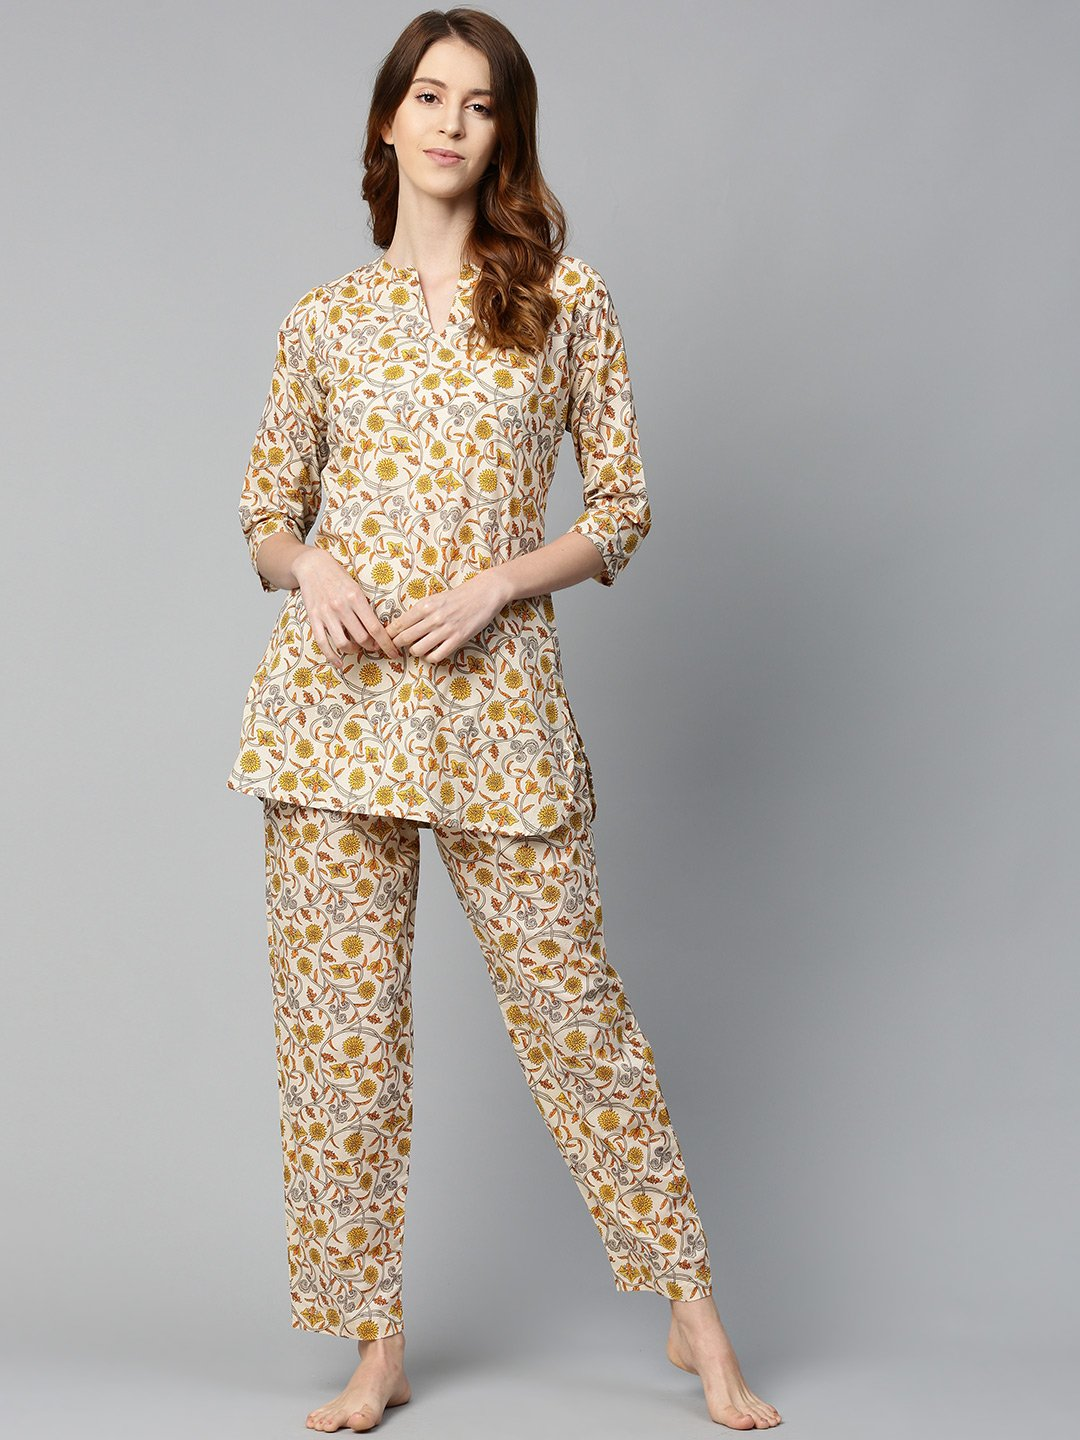 Women Cream And multi floral prnt Top and pant set